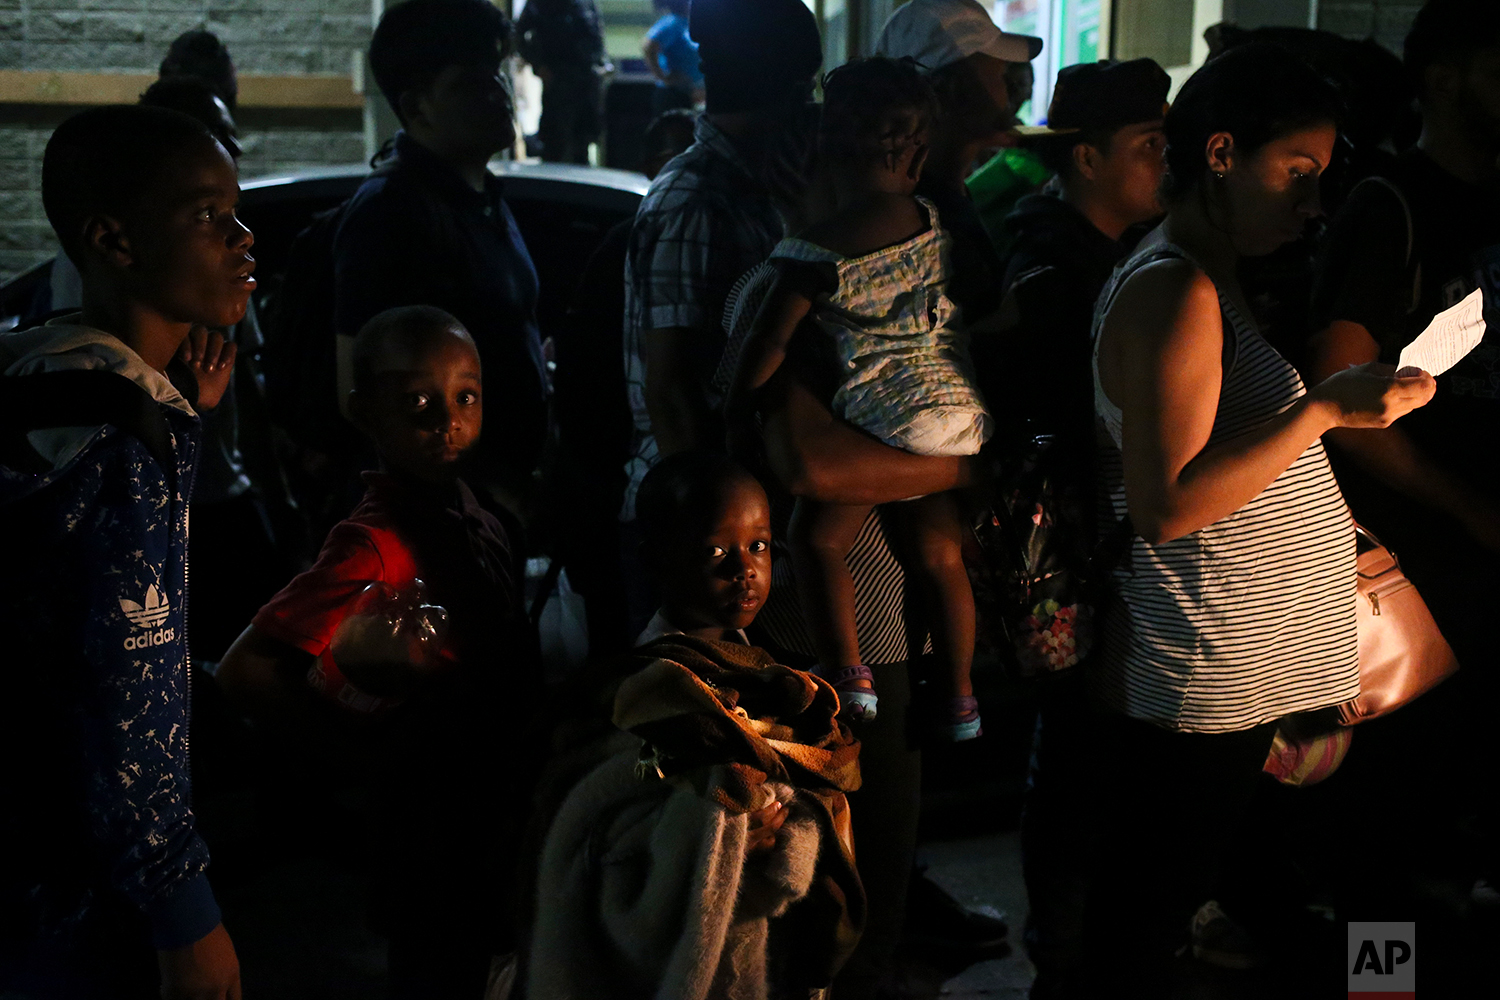 In this July 4, 2018 photo, child migrants traveling with their parents line up to get on a bus destined for Guatemala City as they make their way to the U.S., in San Pedro Sula, Honduras. In 2018, the Honduran Migration Consular Observatory (CONMIGHO) counted 5,488 minors deported back to Honduras from the U.S., Mexico, Europe and Central America. (AP Photo/Esteban Felix)